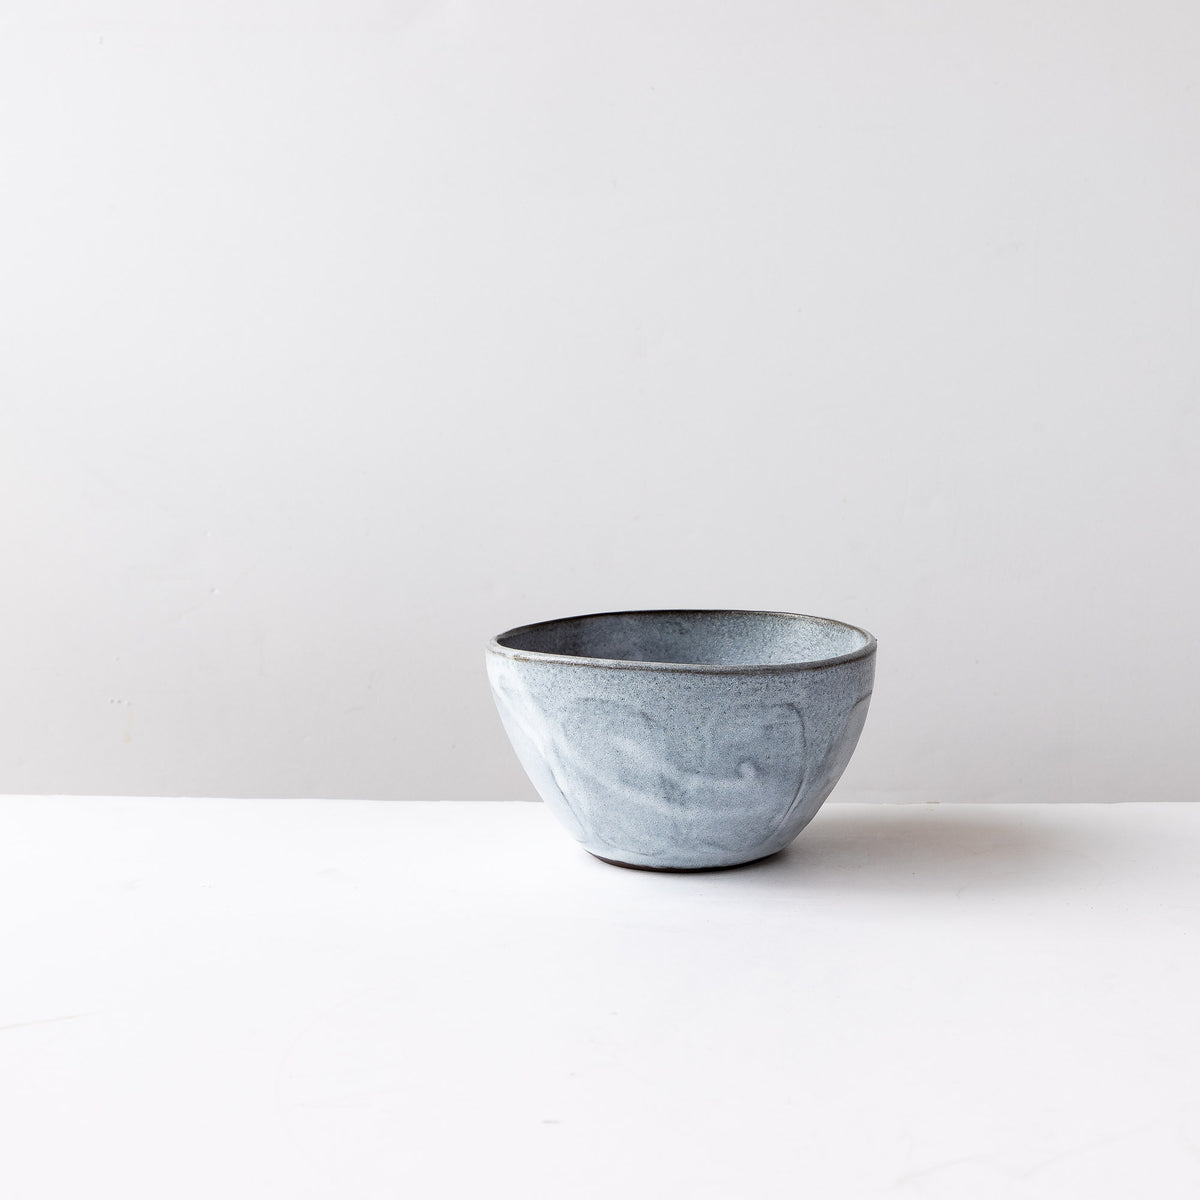 Handbuilt Stoneware Breakfast Bowl - Grey & White - Sold by Chic & Basta